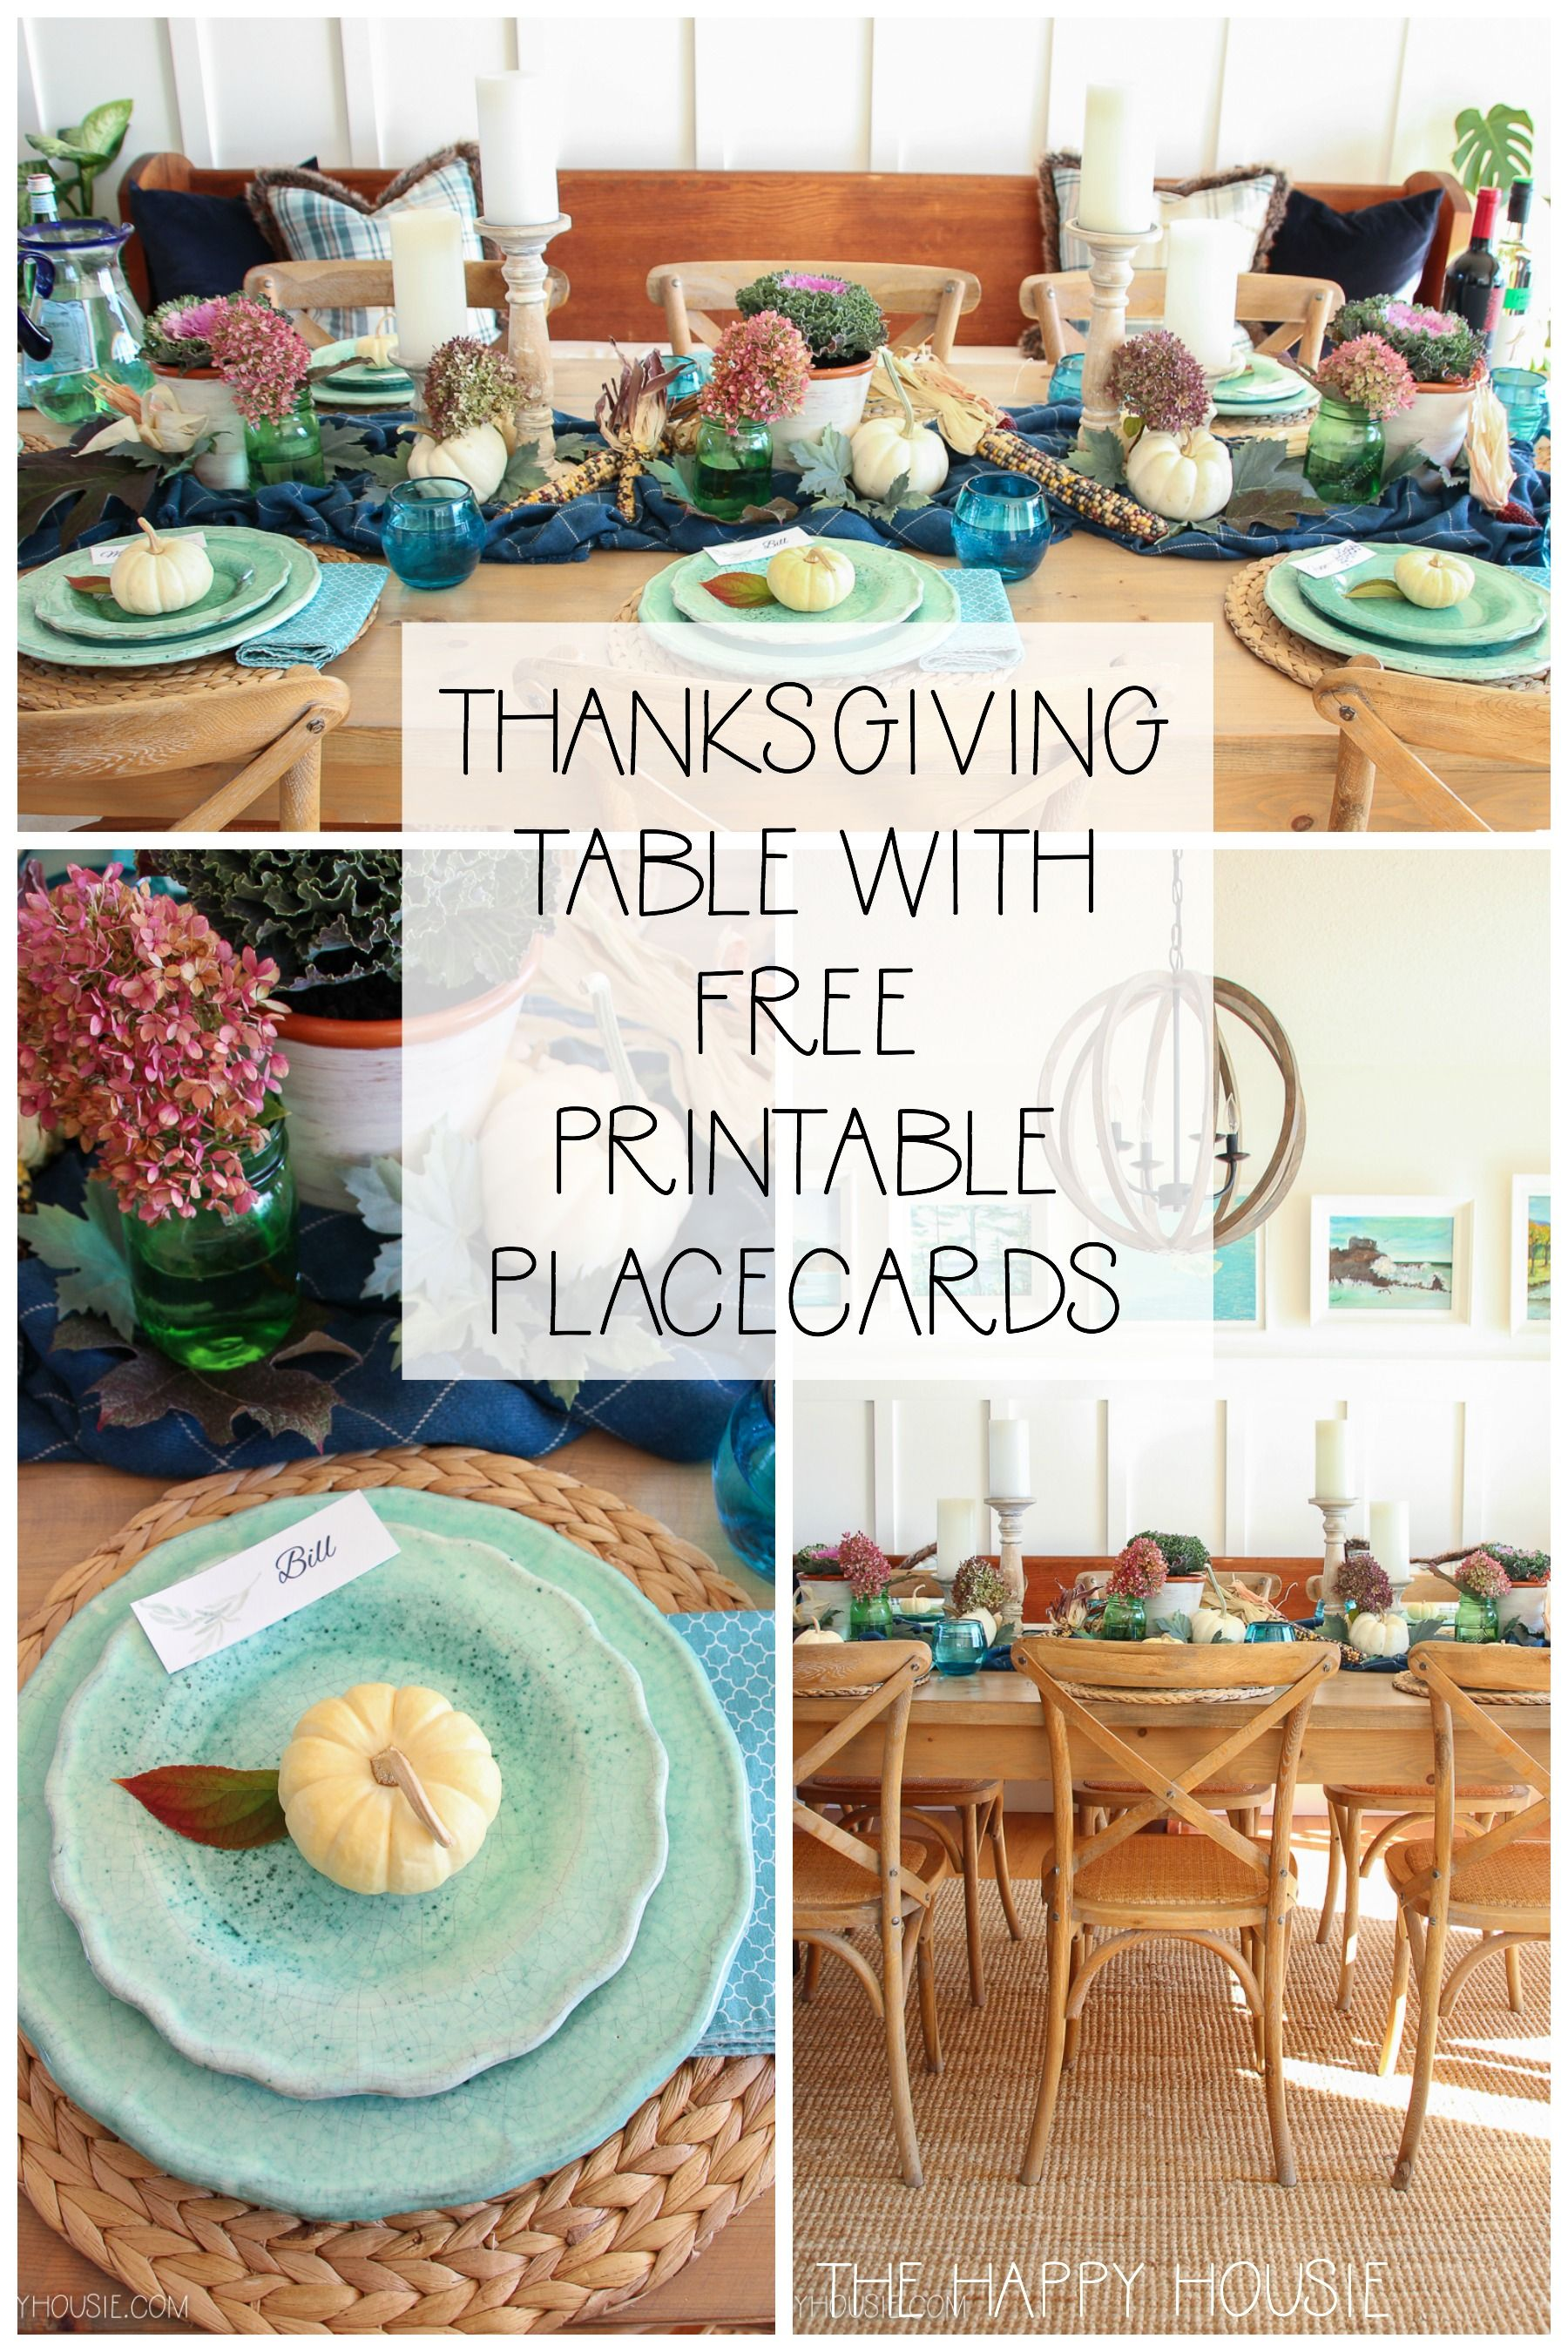 Cozy Plaid Fall & Thanksgiving Tablescape with Printable Place